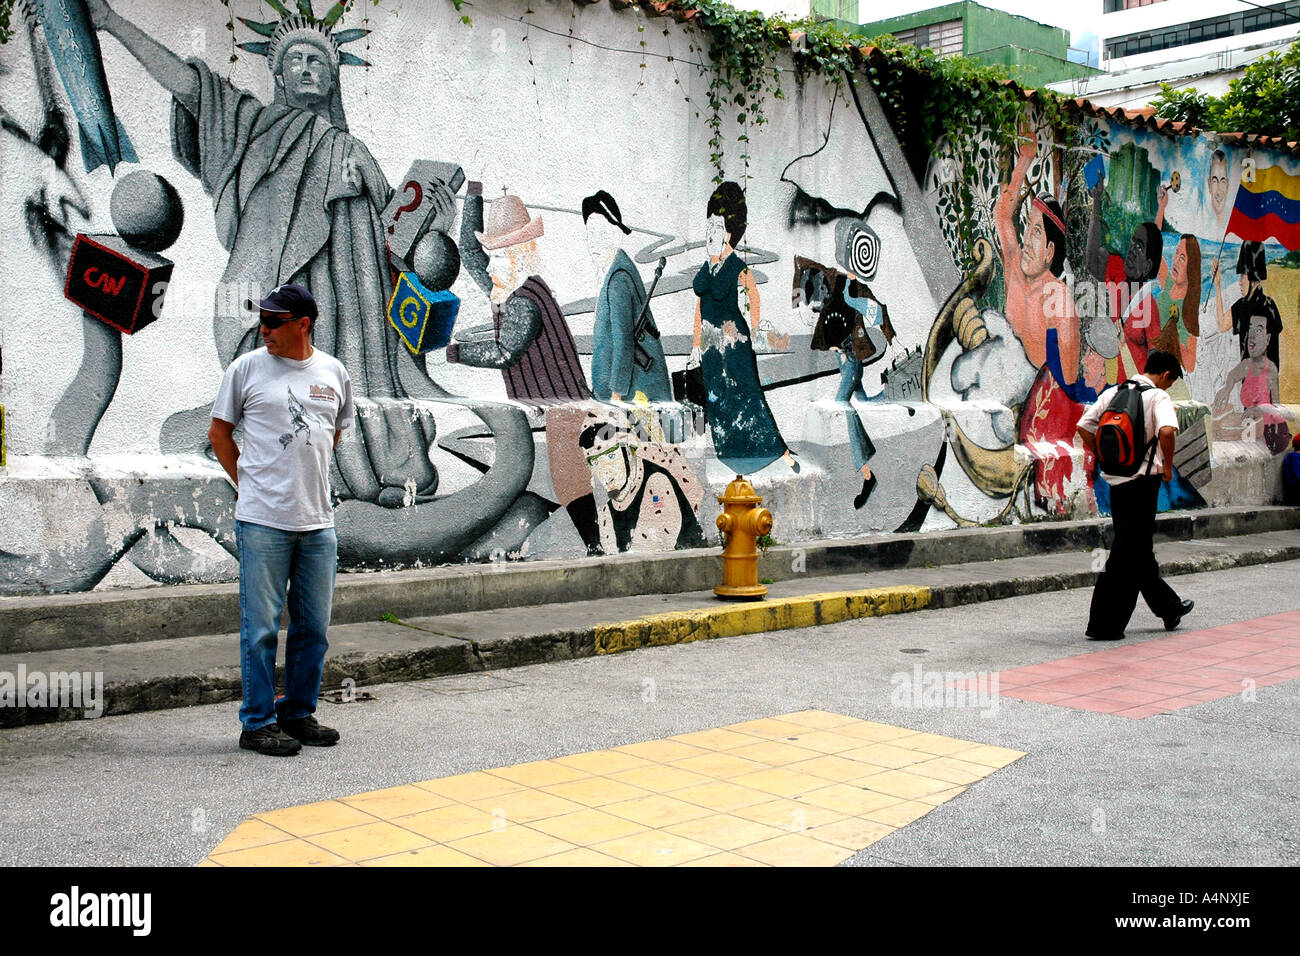 In Mérida, a Venezuela university city, a mural shows a Statue of Liberty as well as local references - Stock Image